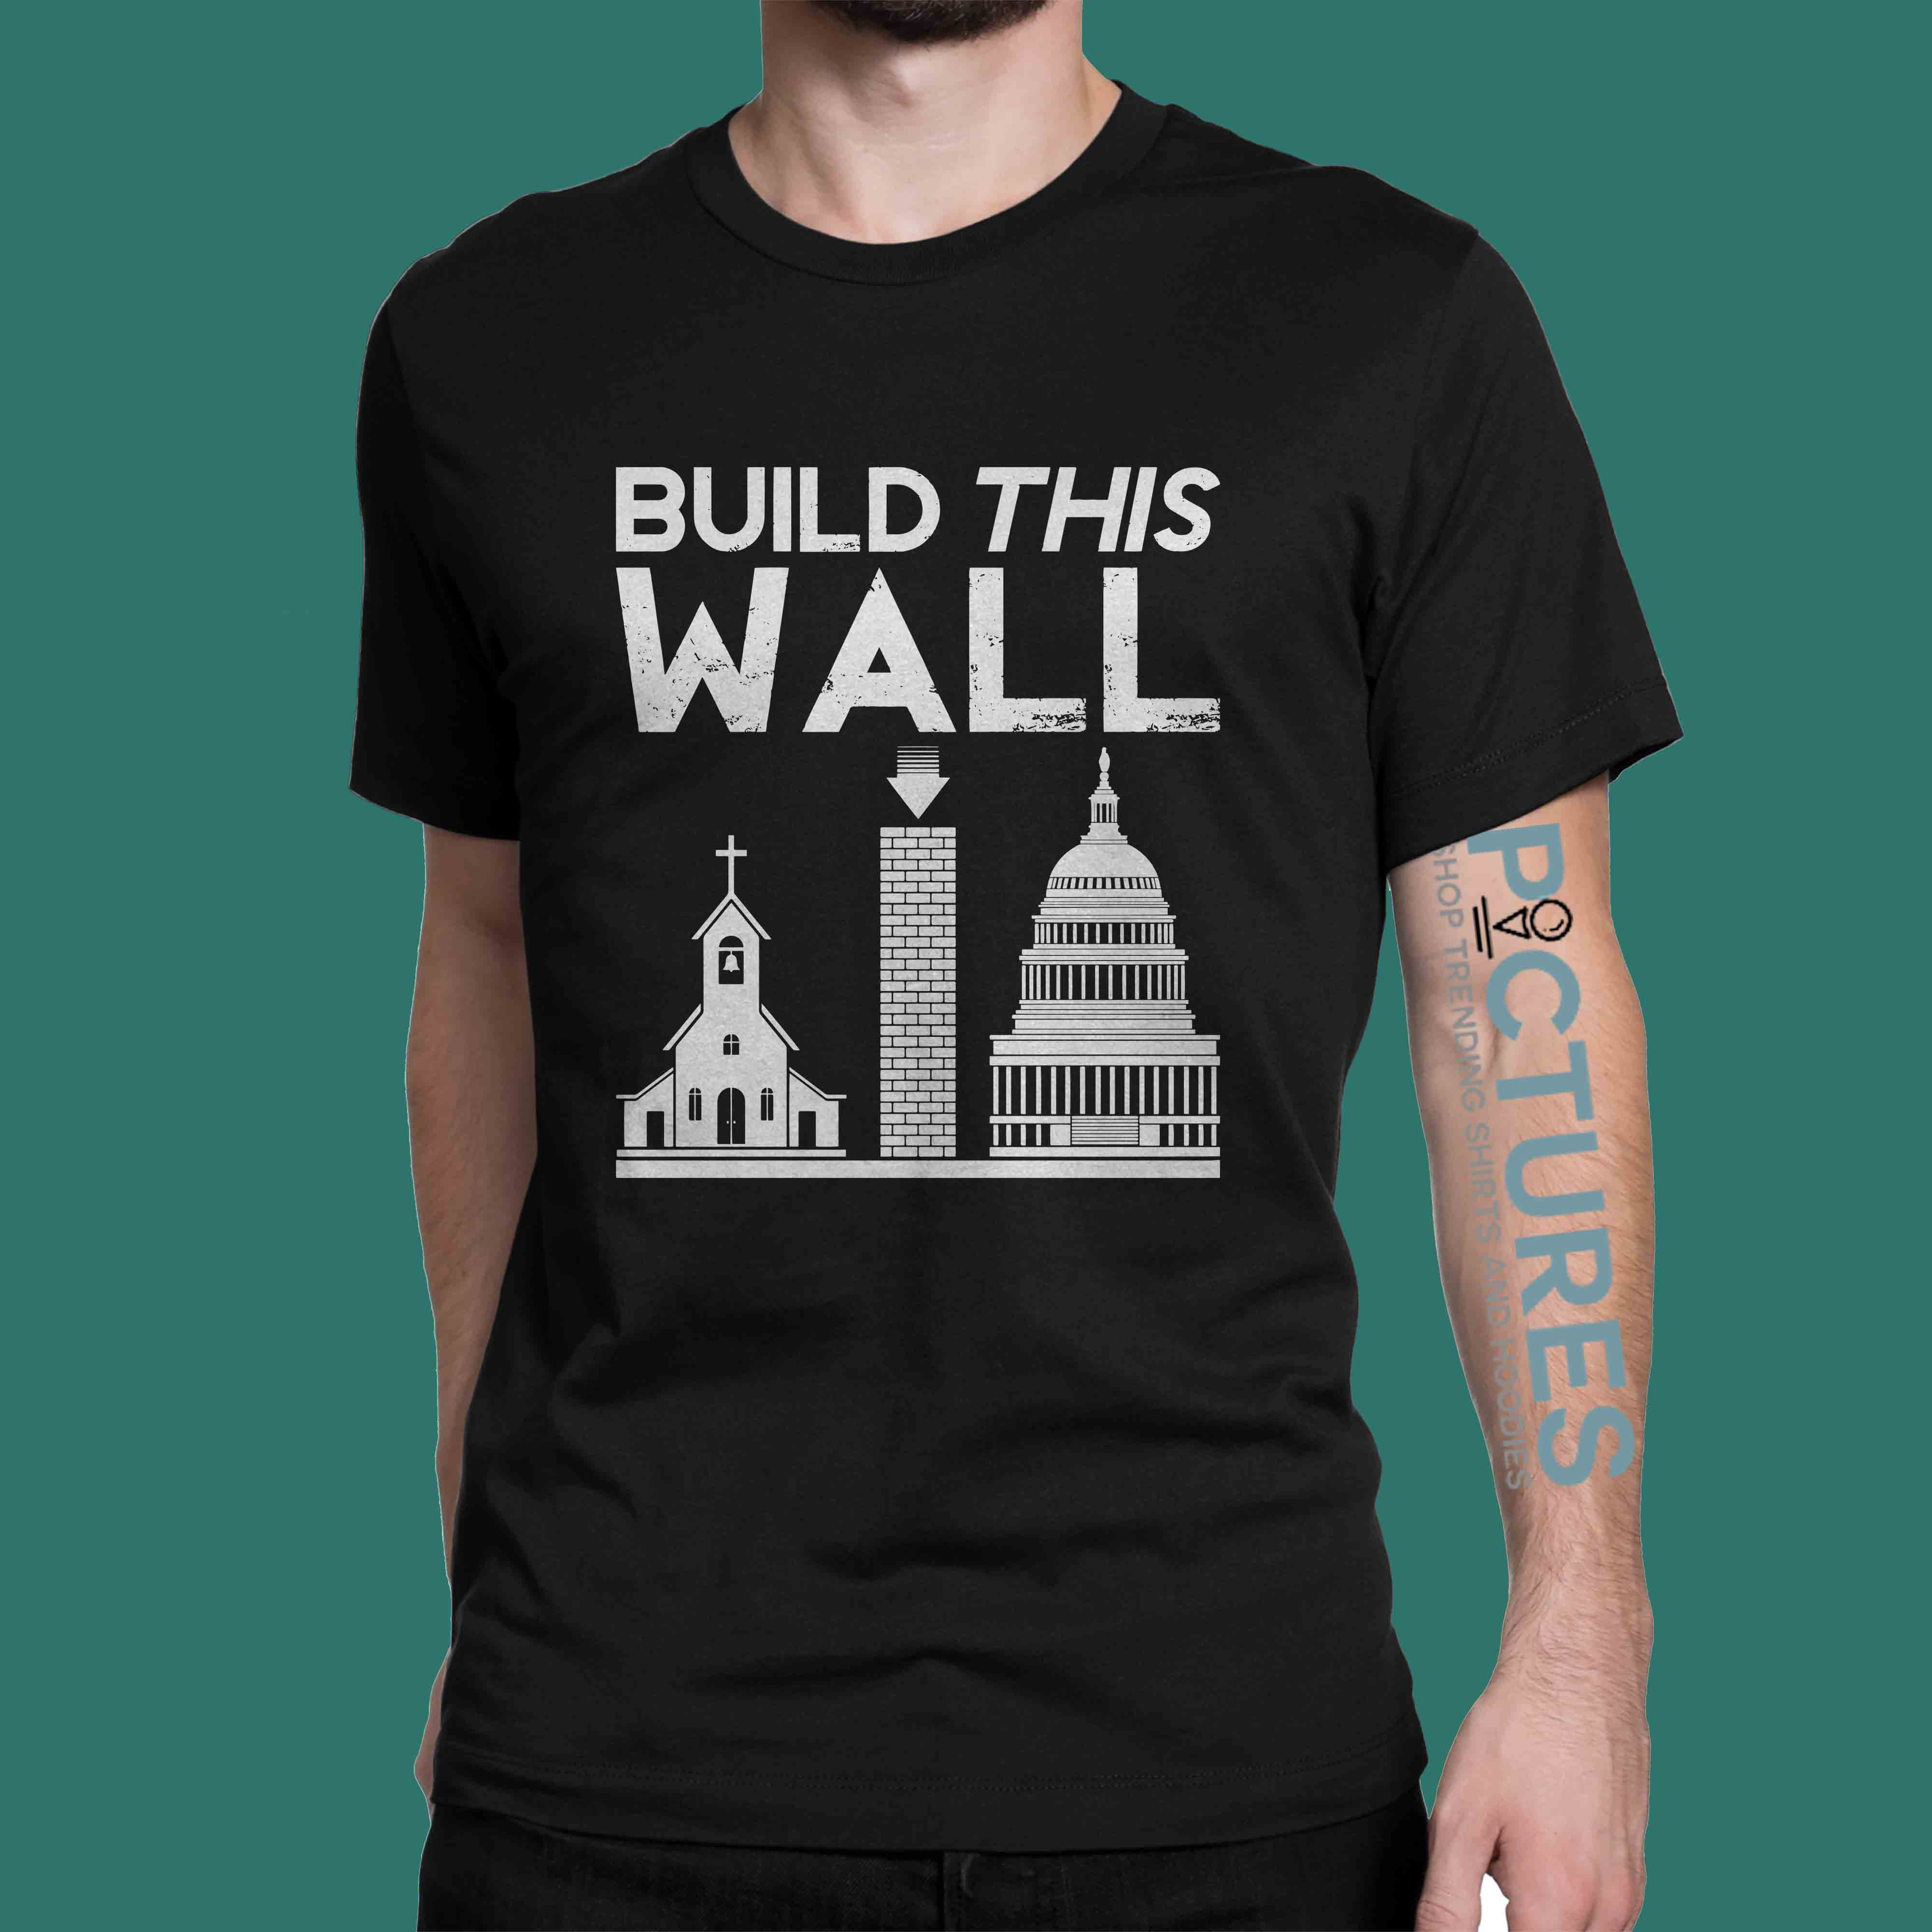 Build This Wall shirt